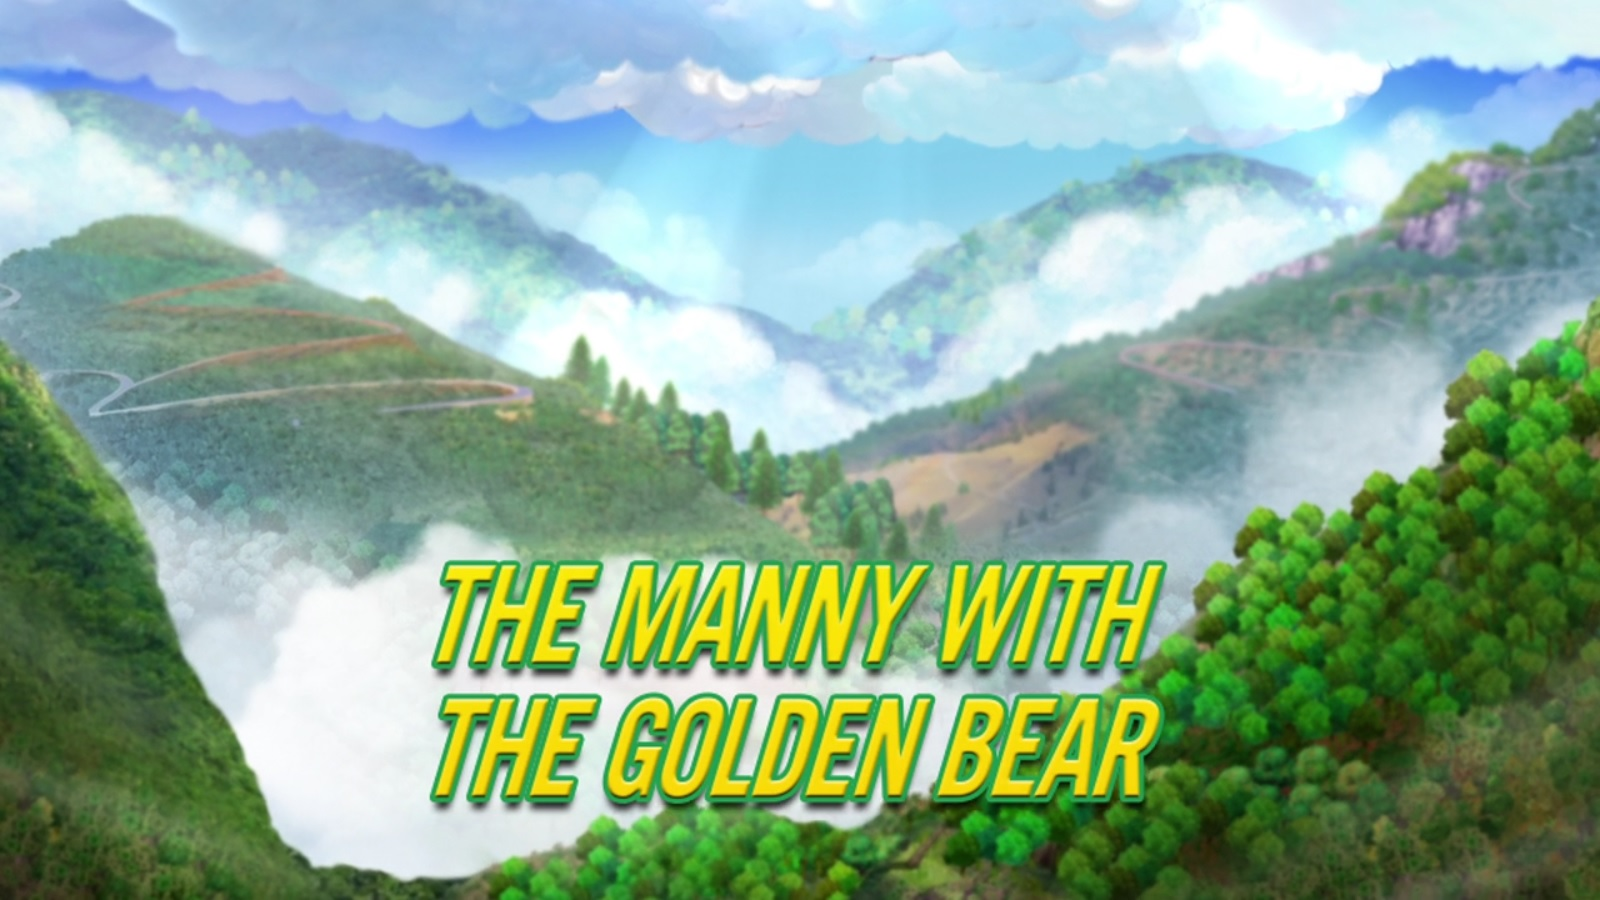 The Manny with the Golden Bear